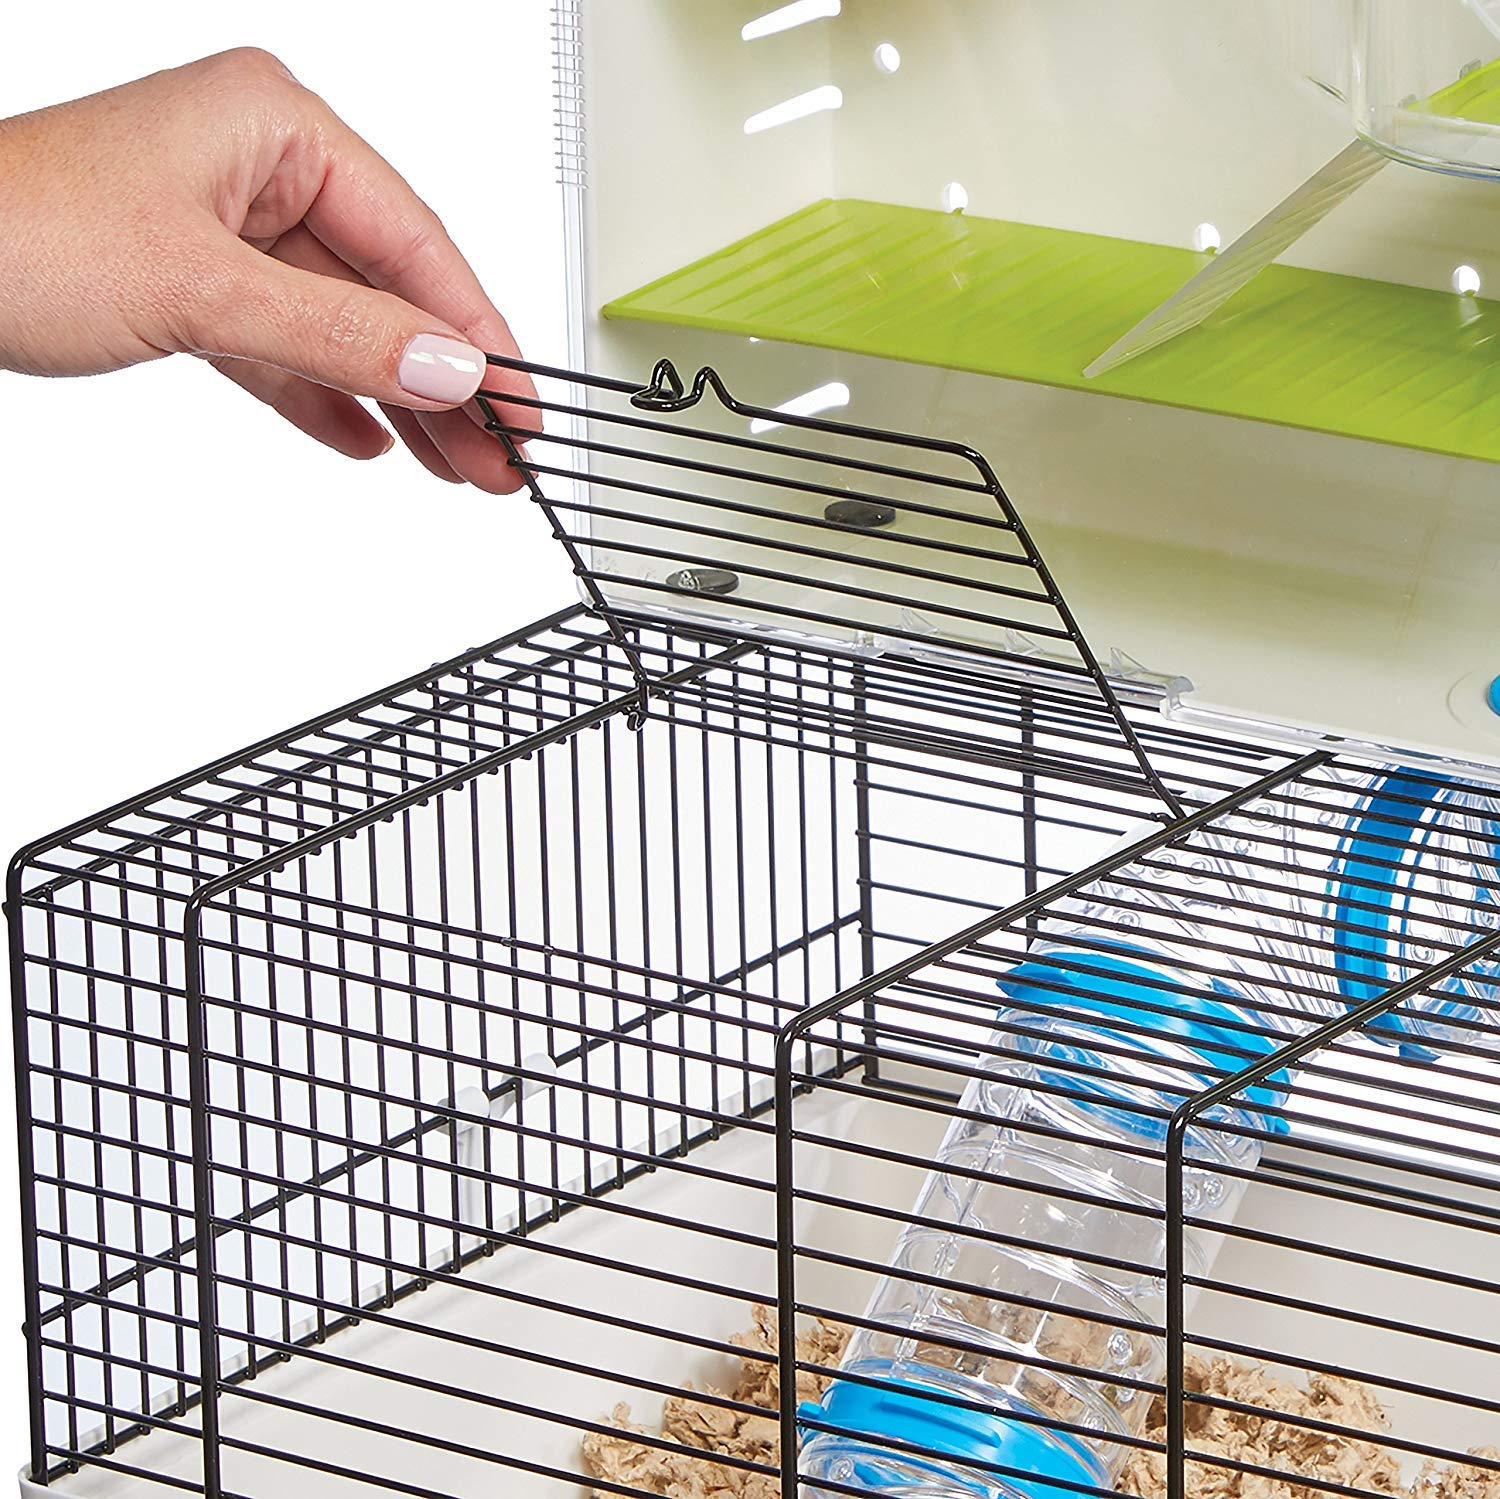 MidWest Homes for Pets Hamster Cage | Awesome Arcade Hamster Home | 18.11'' x 11.61'' x 21.26'' by MidWest Homes for Pets (Image #3)